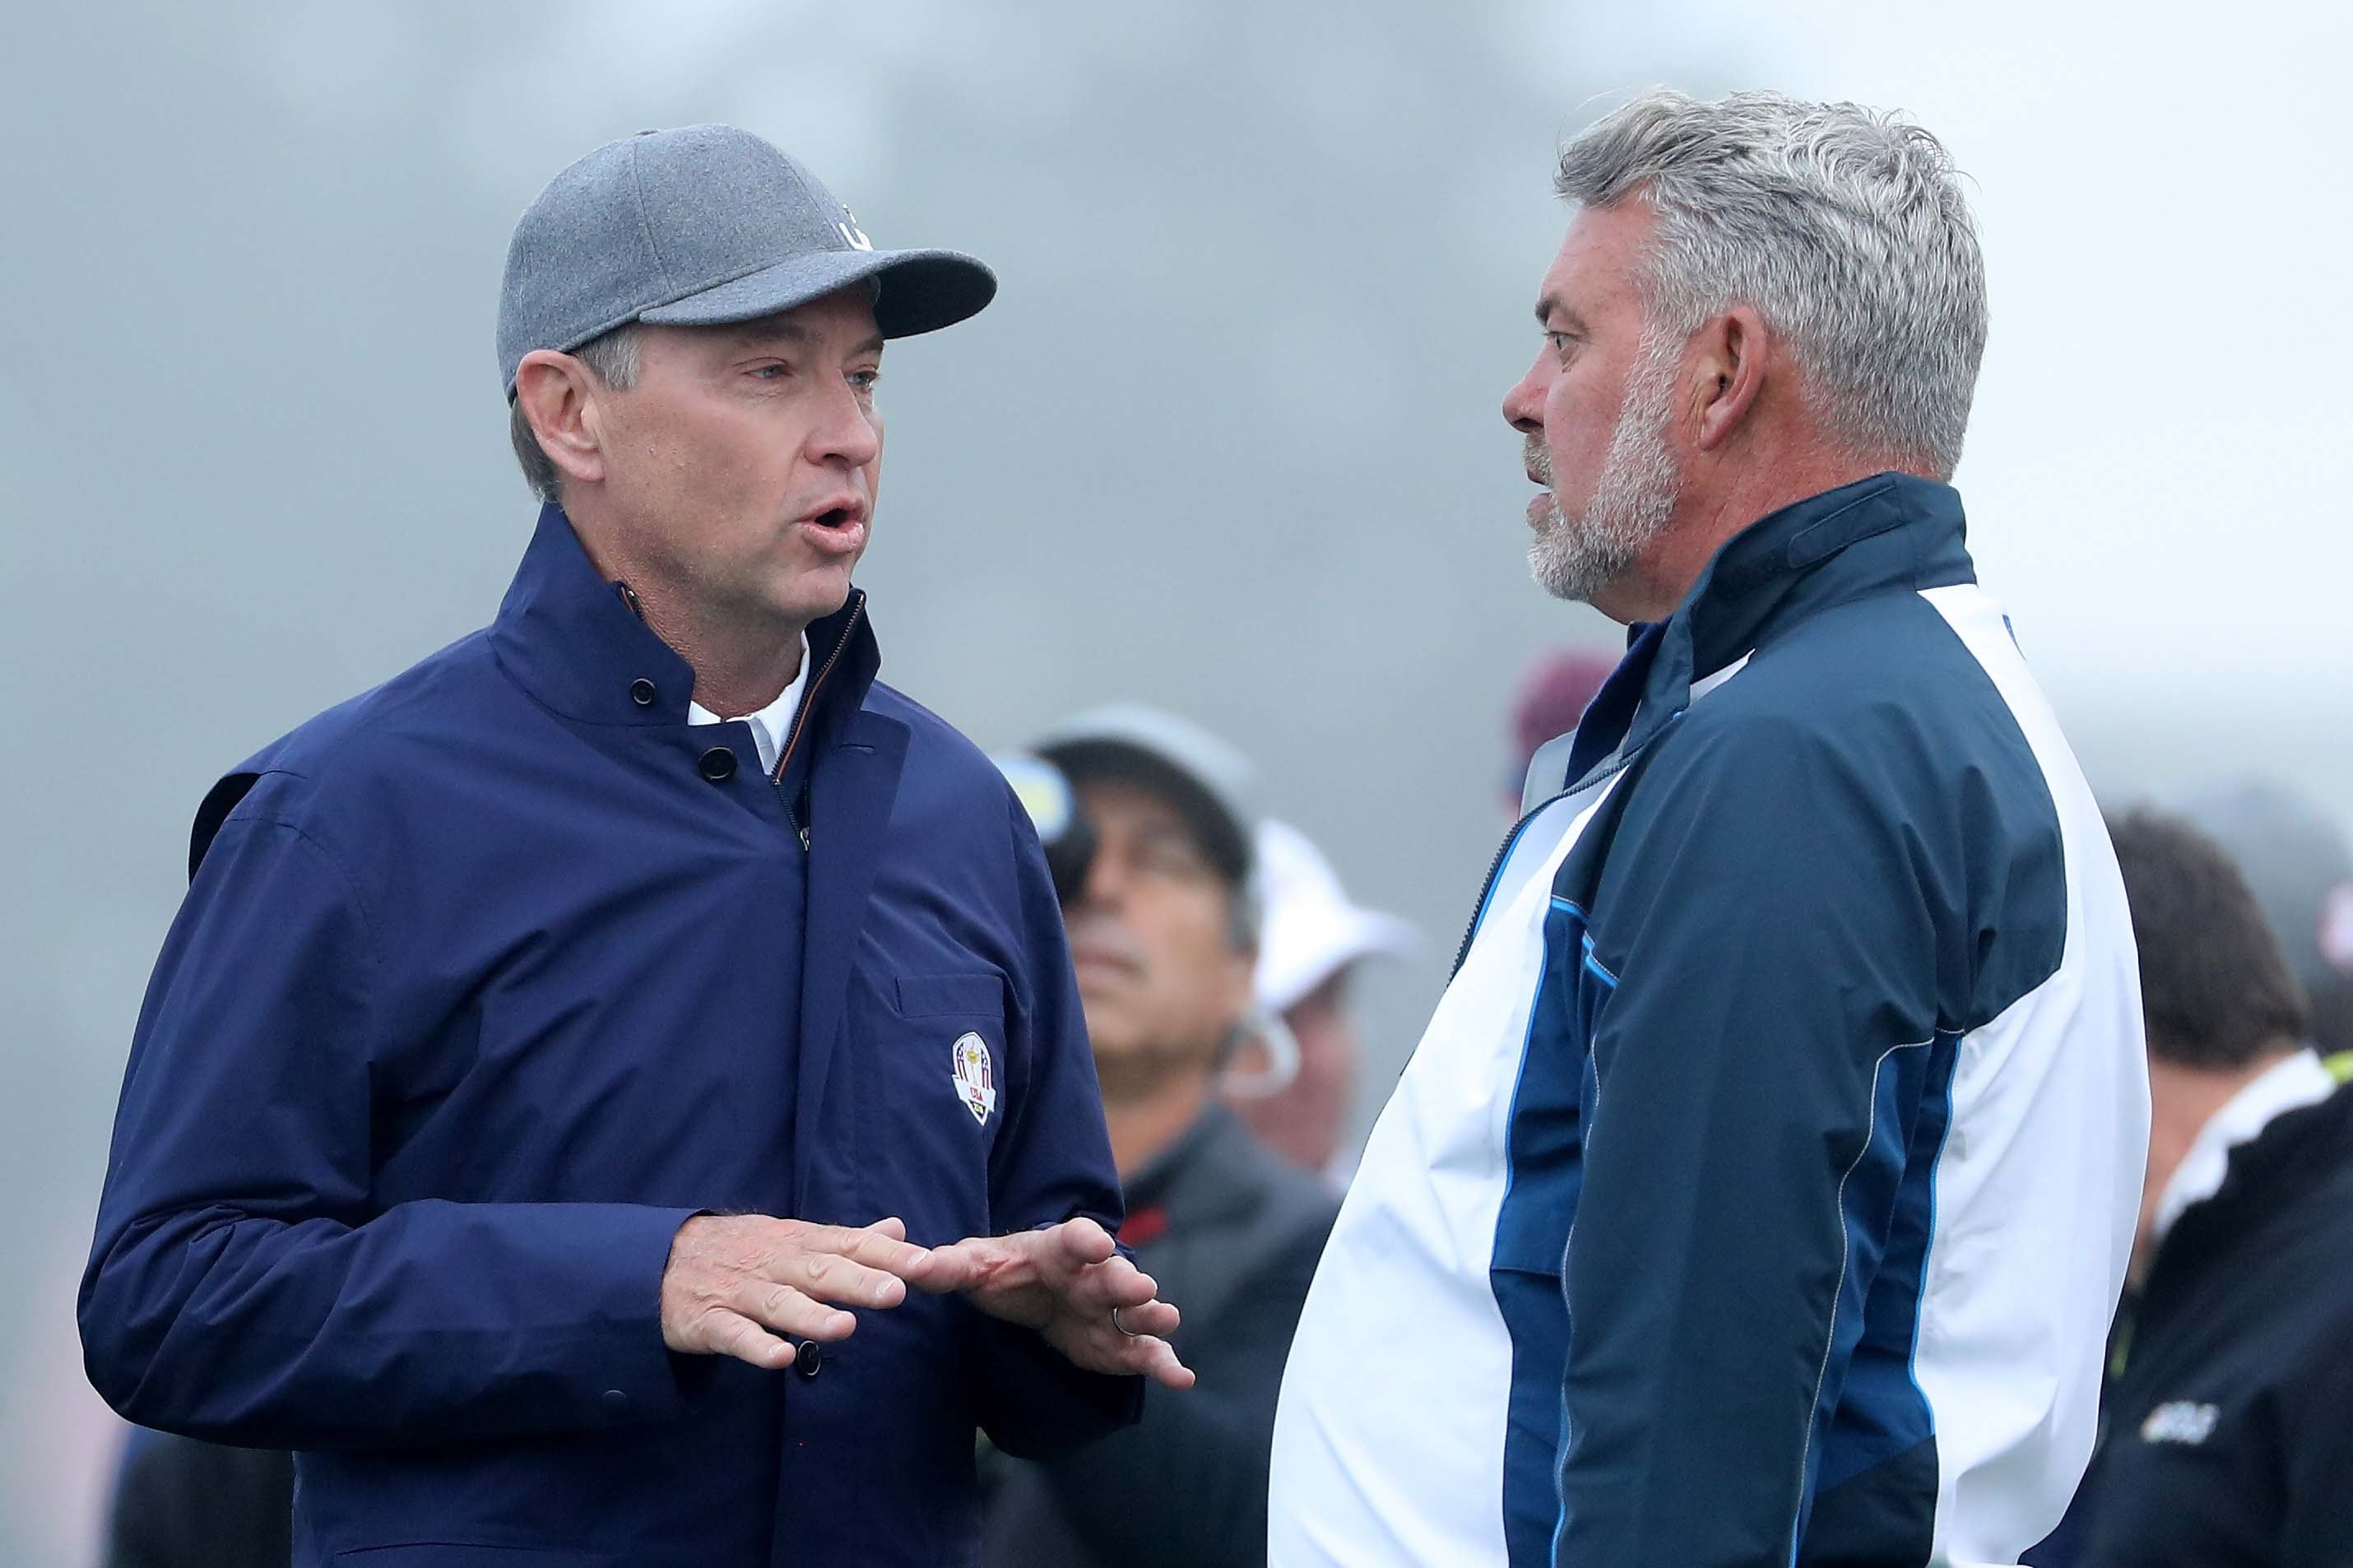 Davis Love III and Darren Clarke